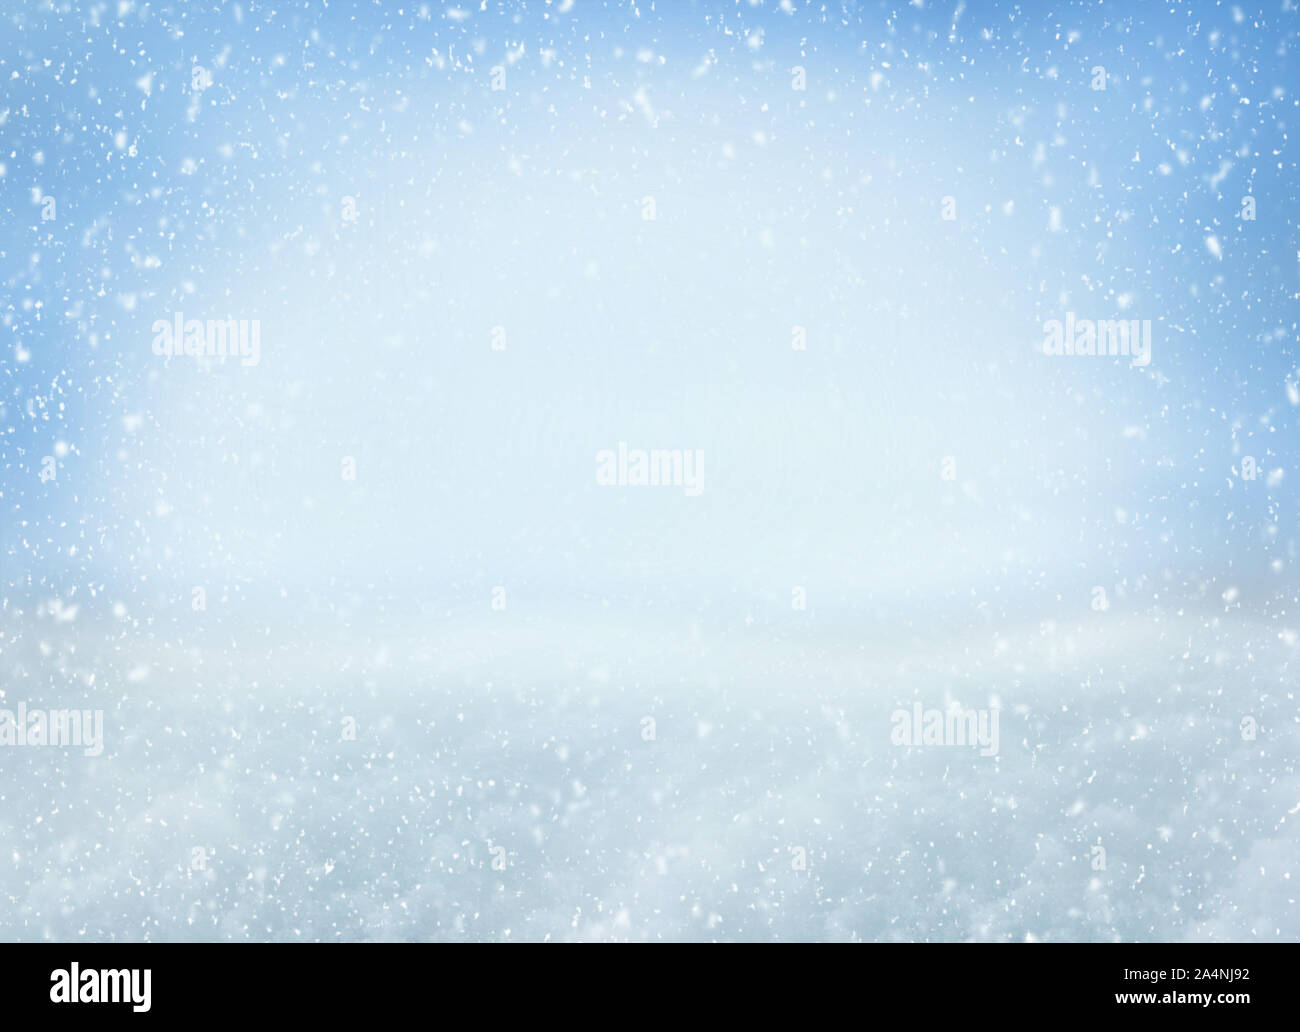 Winter Christmas background with falling snowflakes on blue background. Background for design with copy space Stock Photo